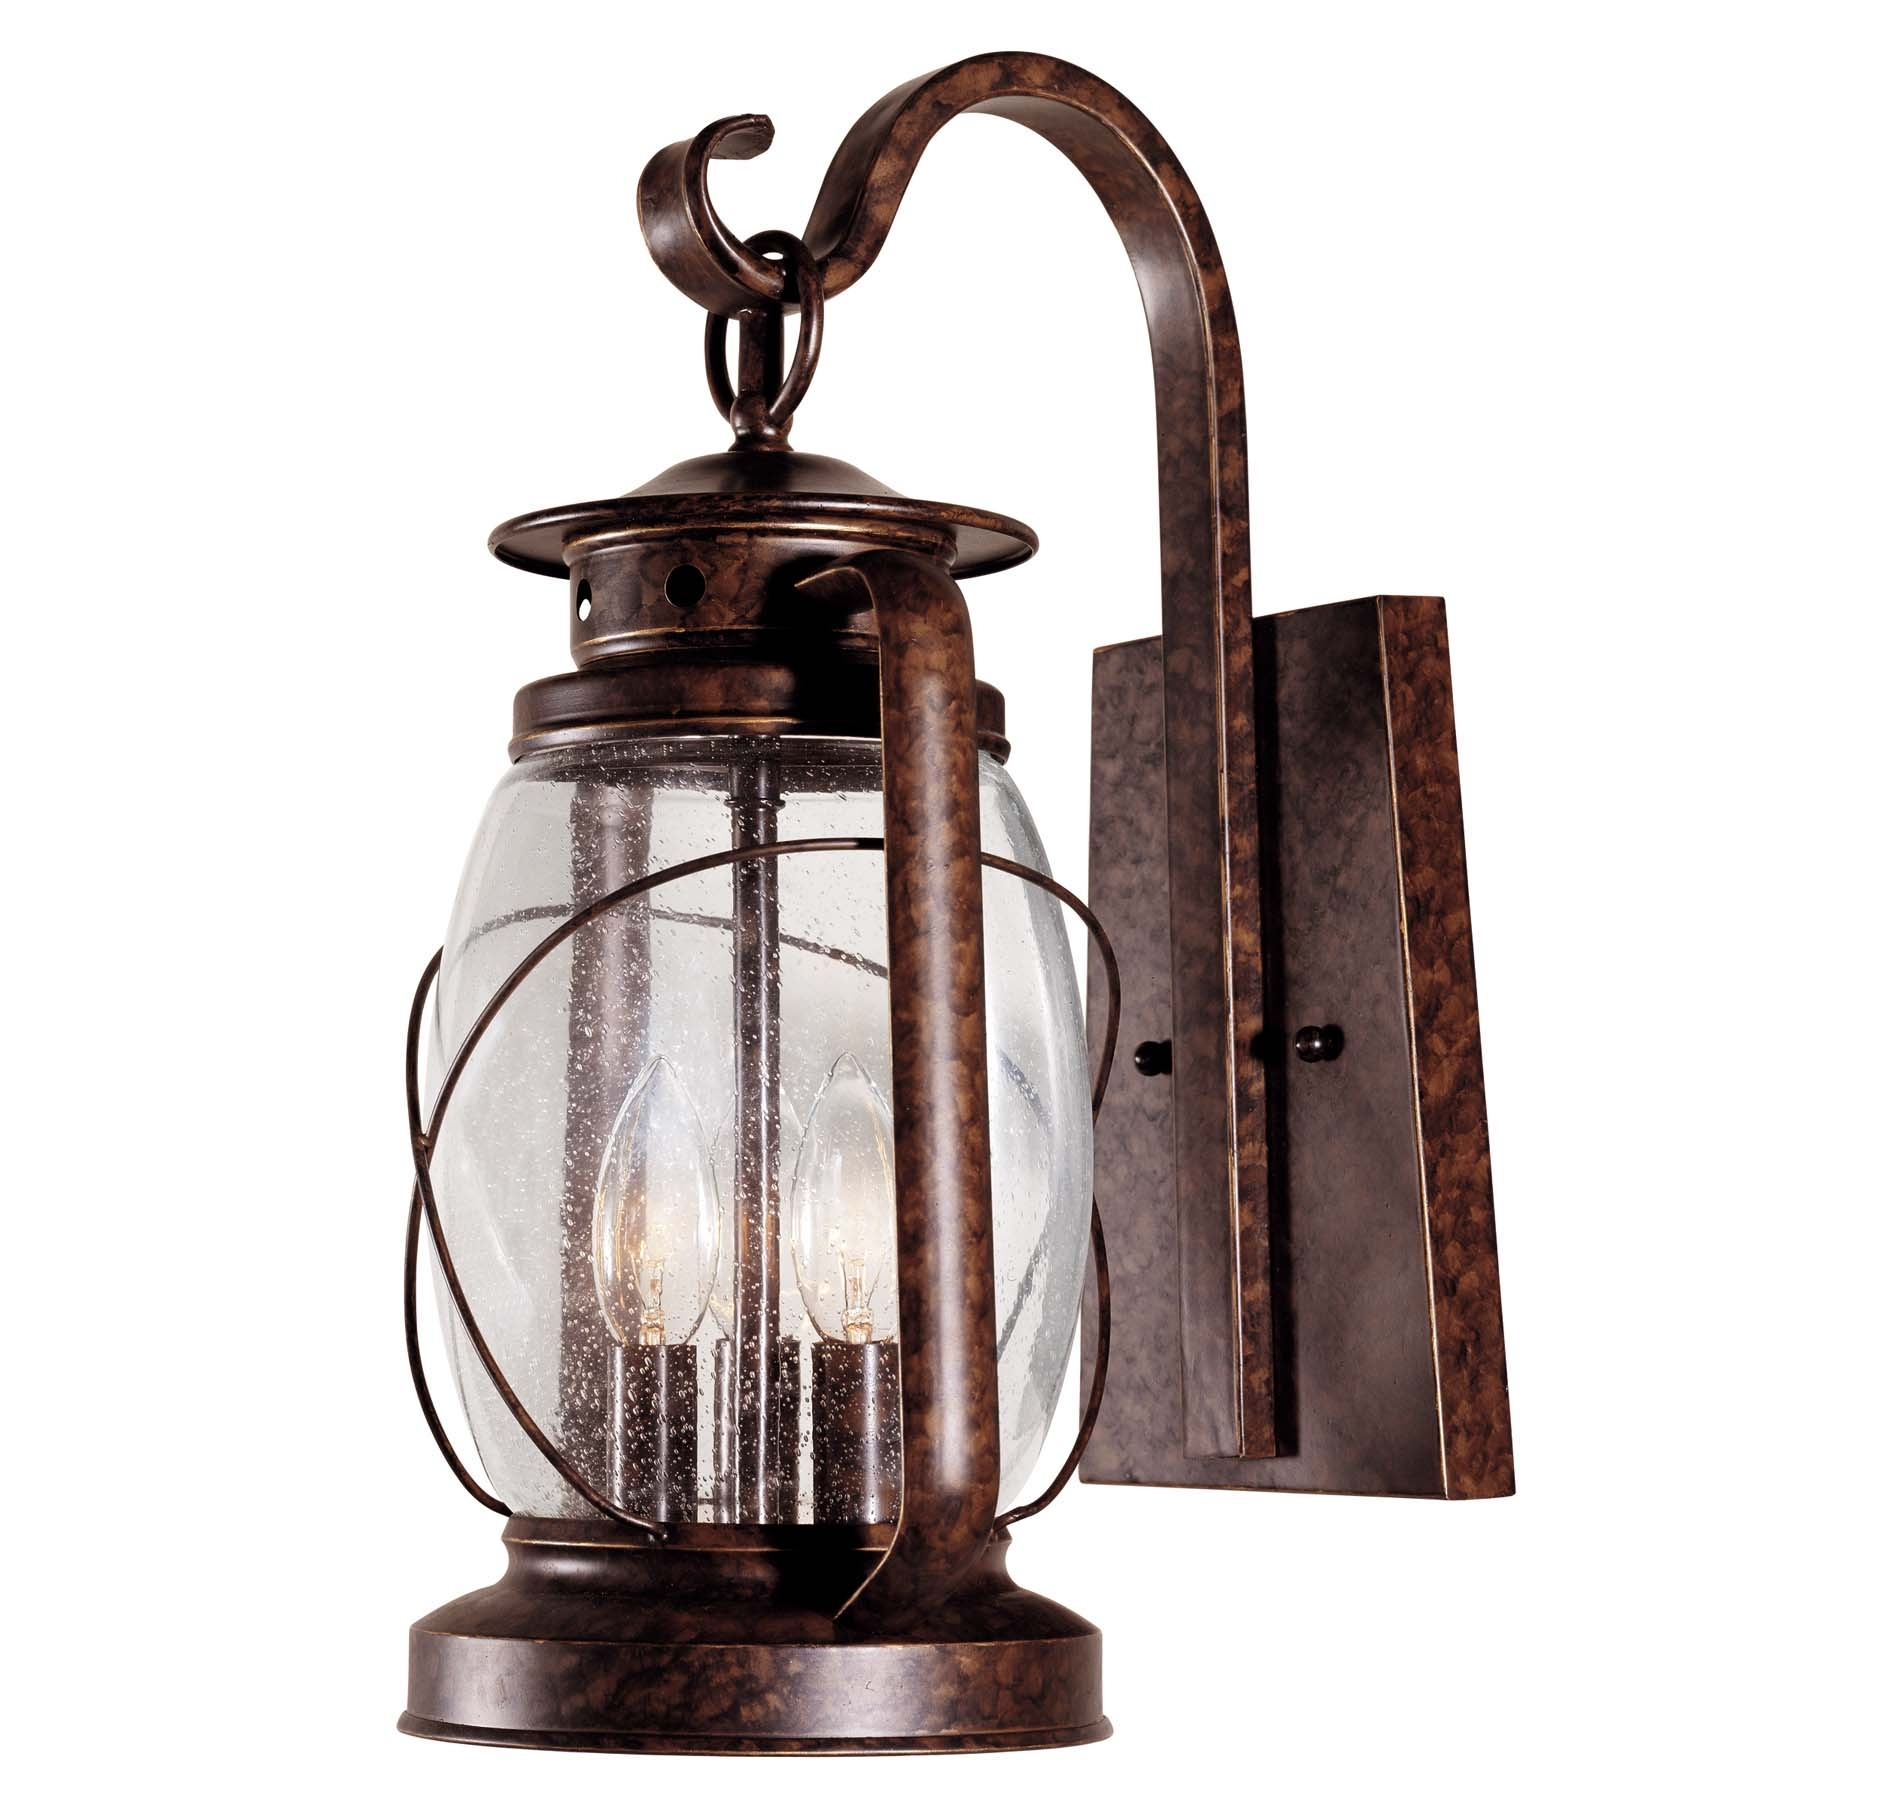 Outdoor Light With Outlet Plug Porch Fixtures Lighting Exterior for Outdoor Electric Lanterns (Image 12 of 20)